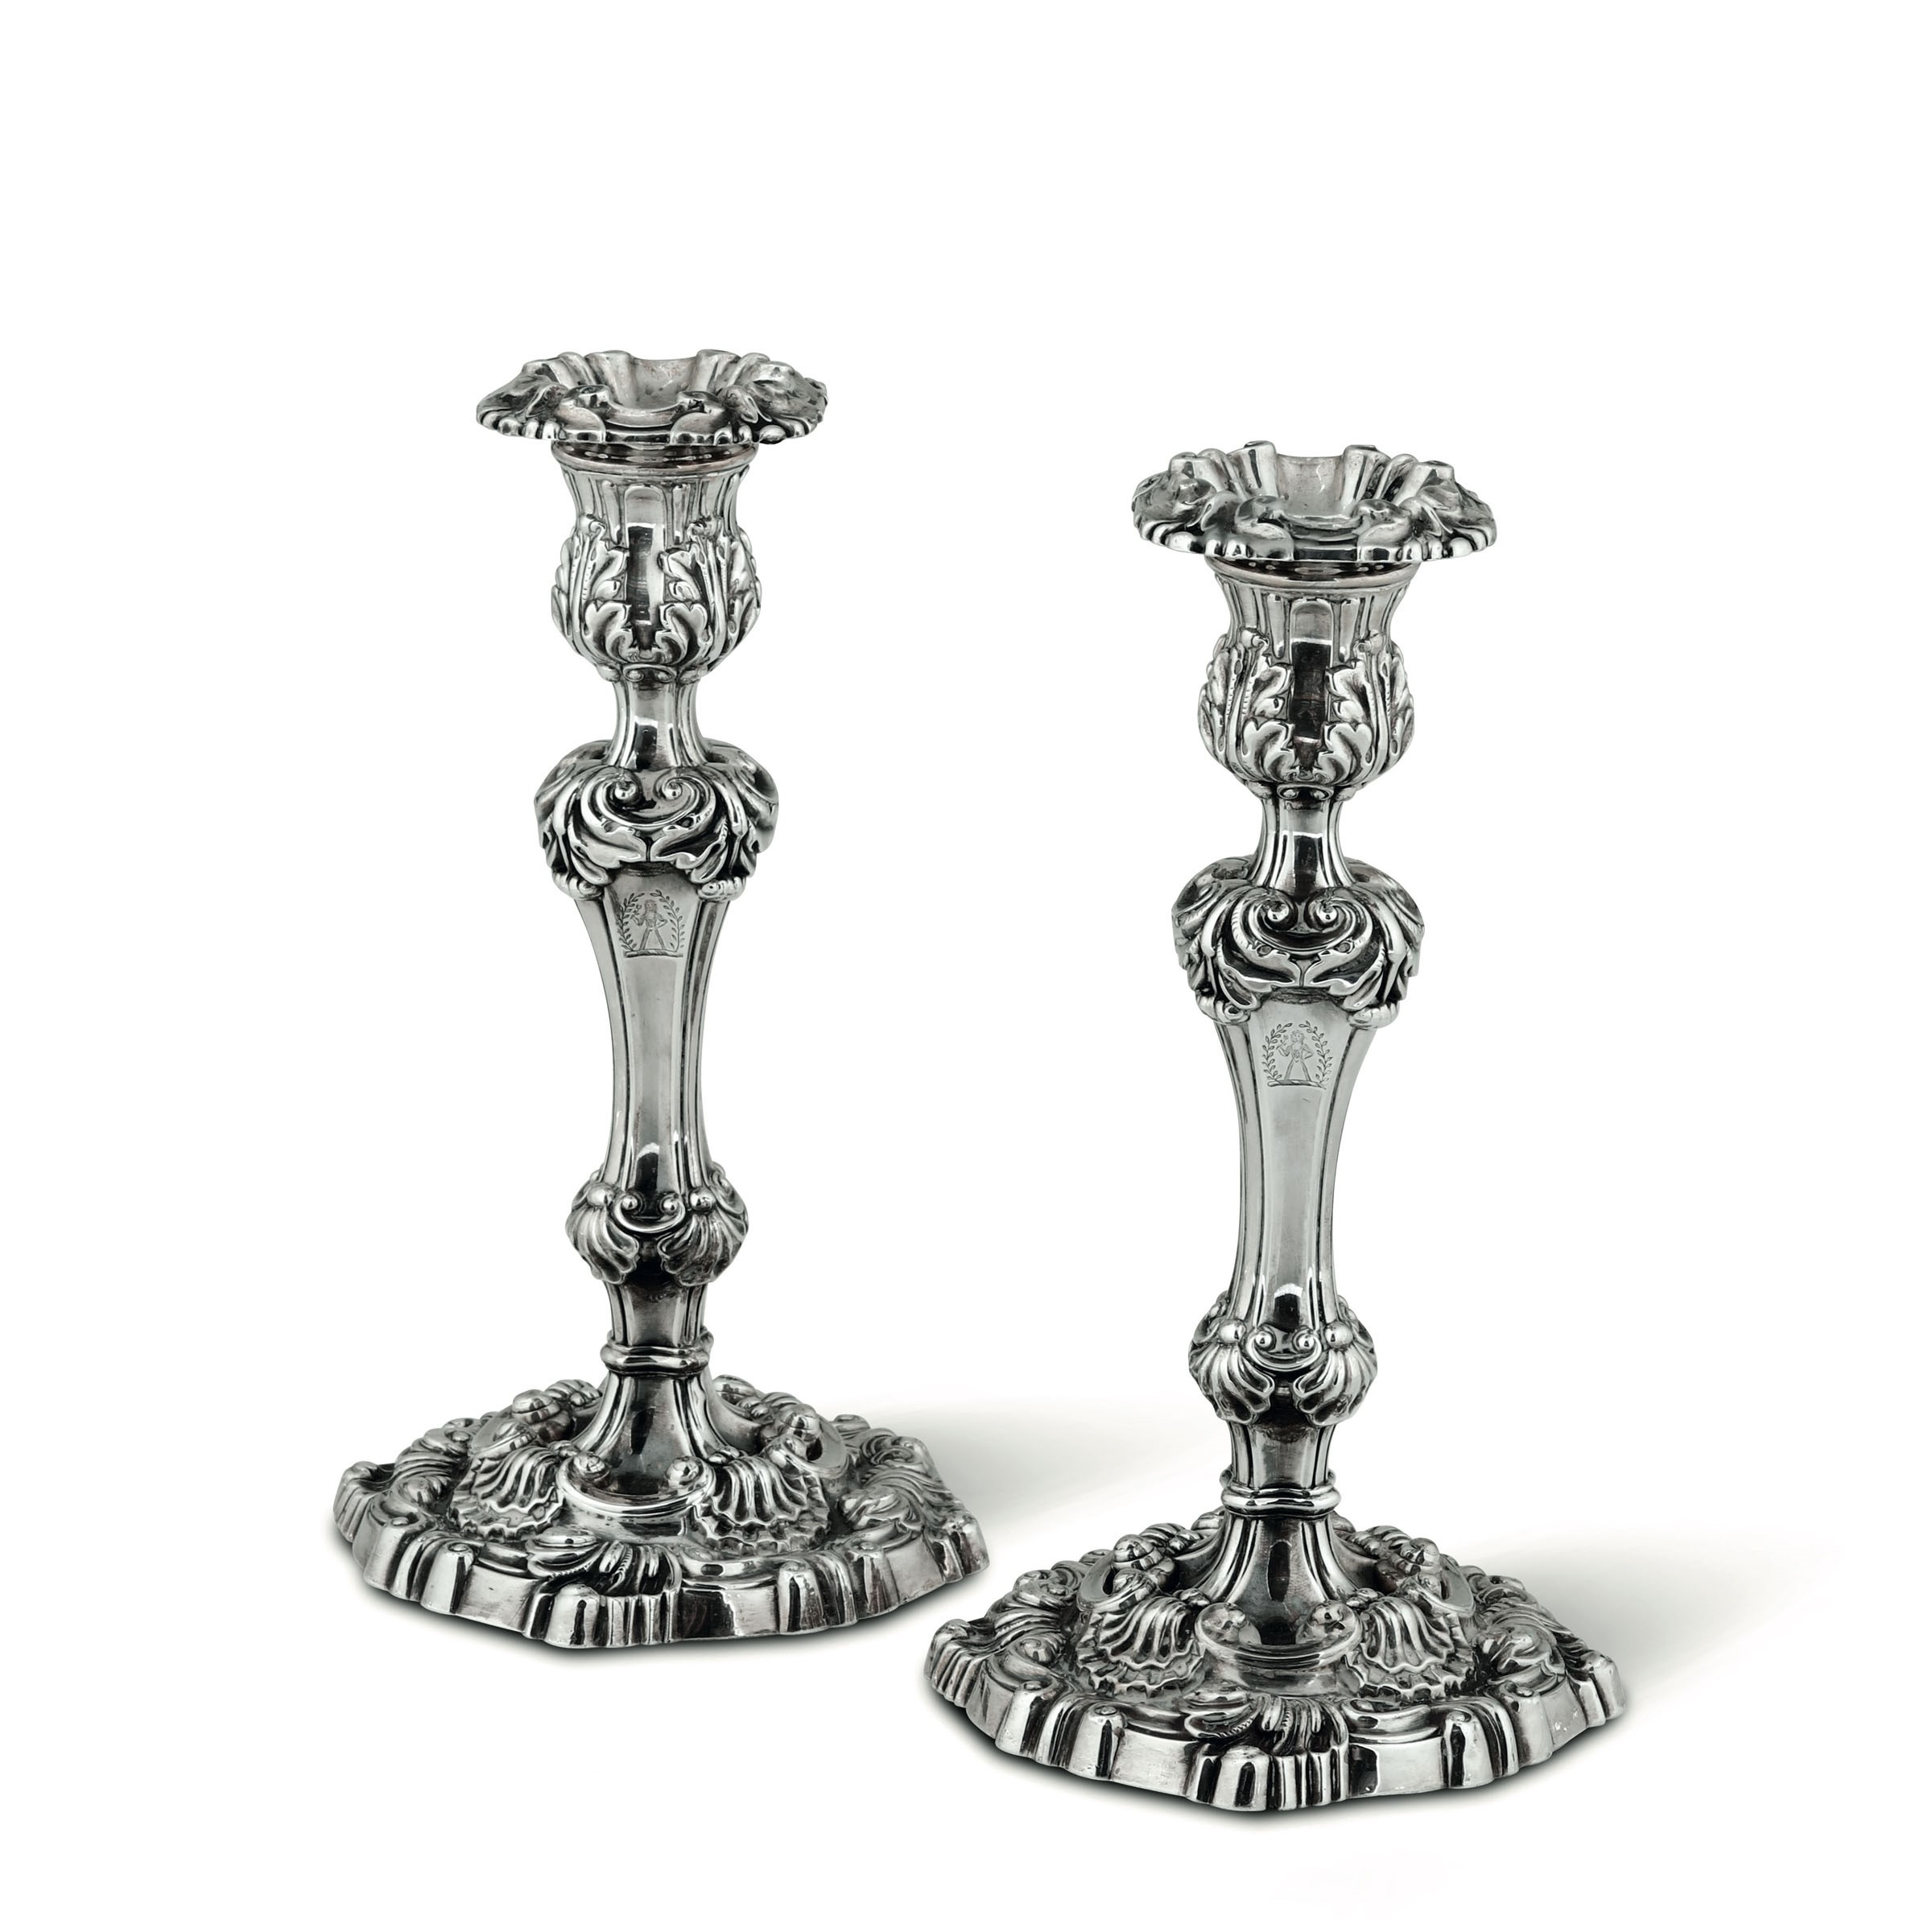 Lot 38 - Two silver candle holders, Sheffield, 1828 - Molten and chiselled silver. Silversmith [...]